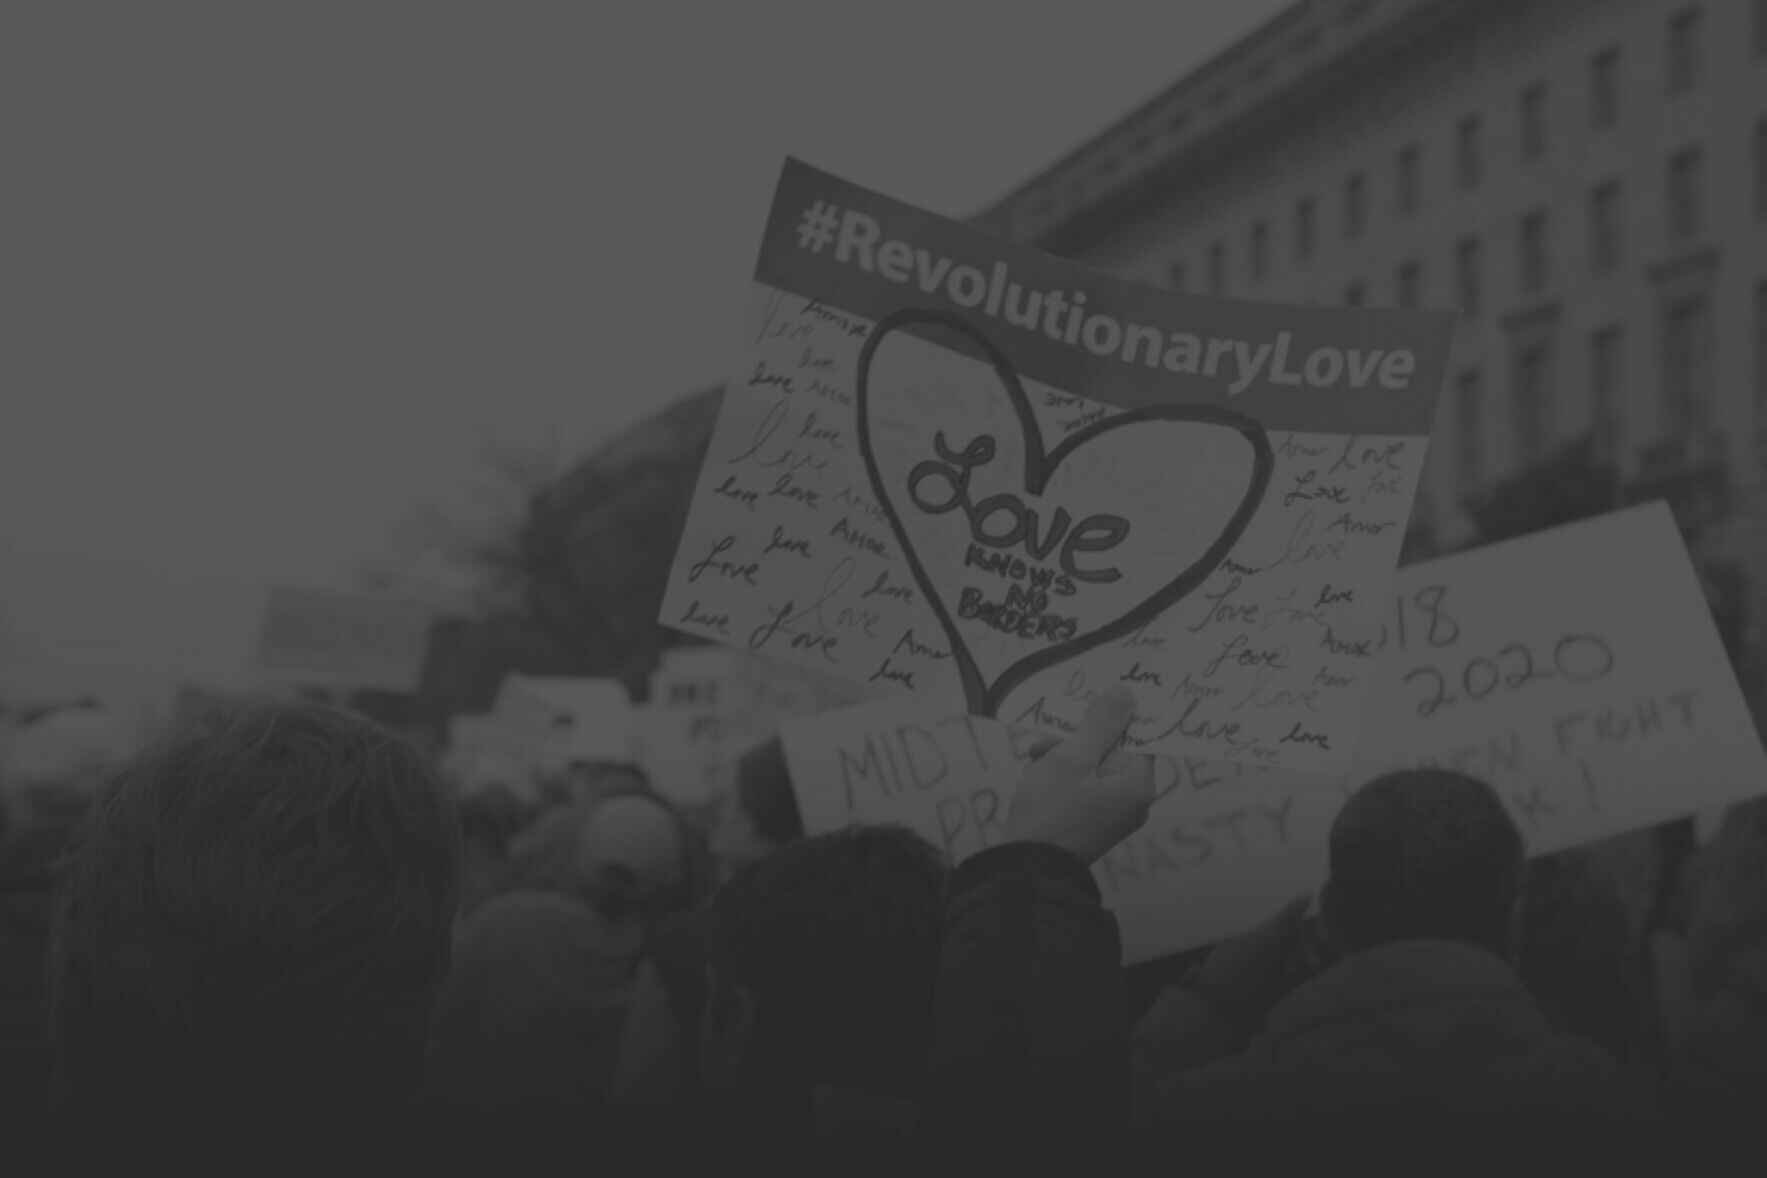 Support the Work of the Revolutionary Love Project image